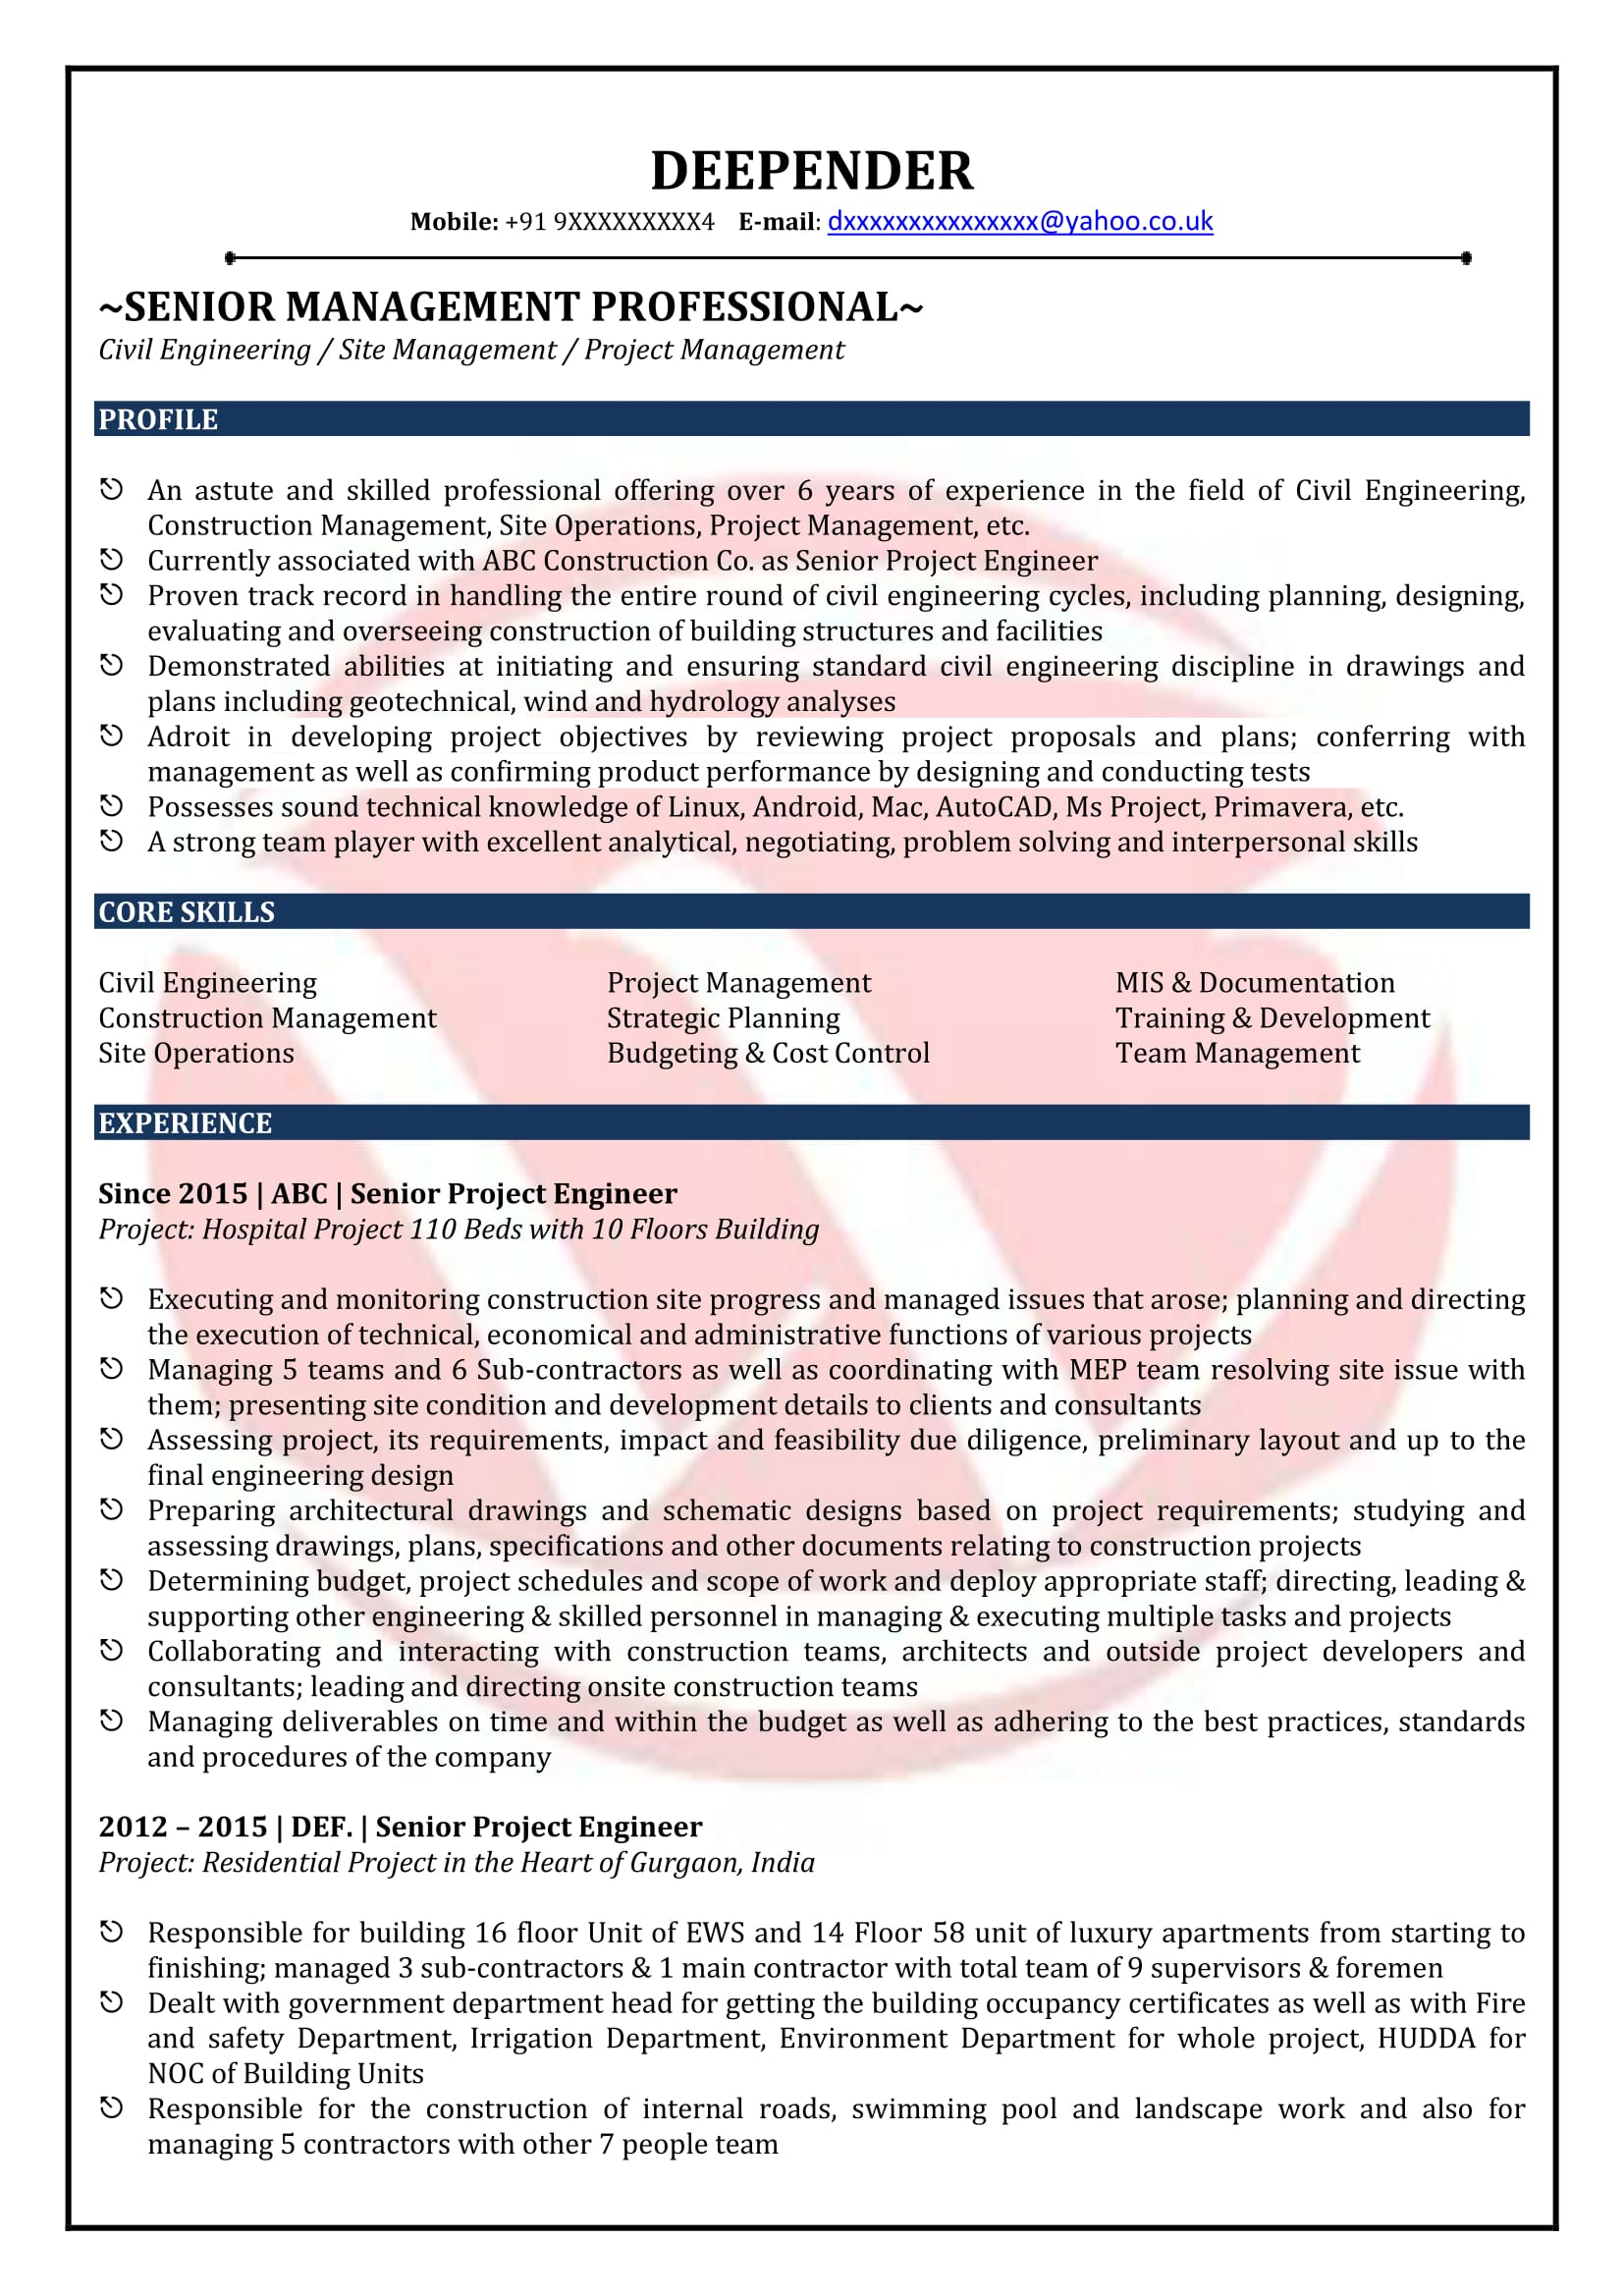 Resume Format For Quality Control Engineer Civil Engineer Sample Resumes Download Resume Format